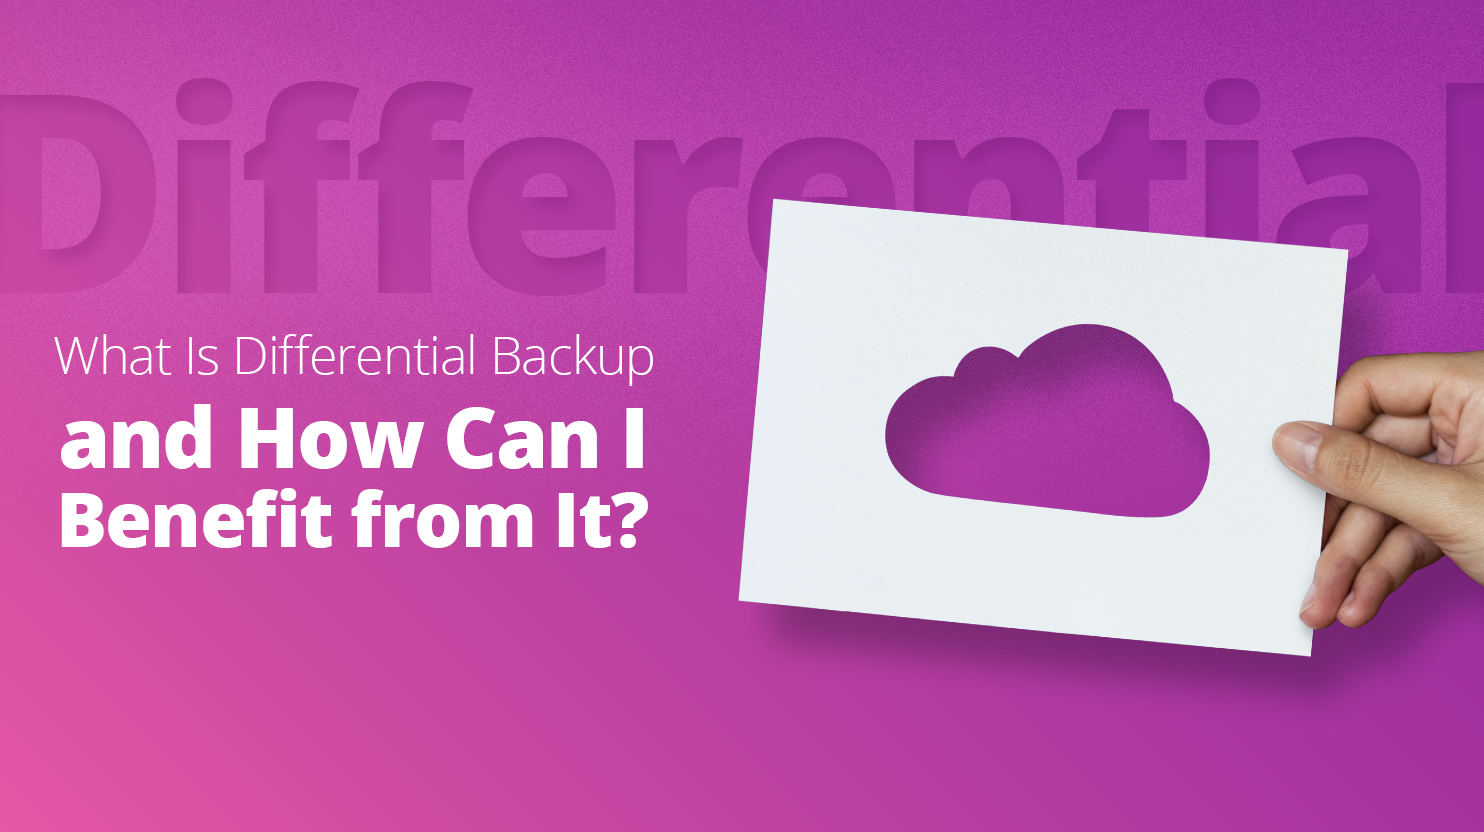 What Is Differential Backup and How Can I Benefit from It?